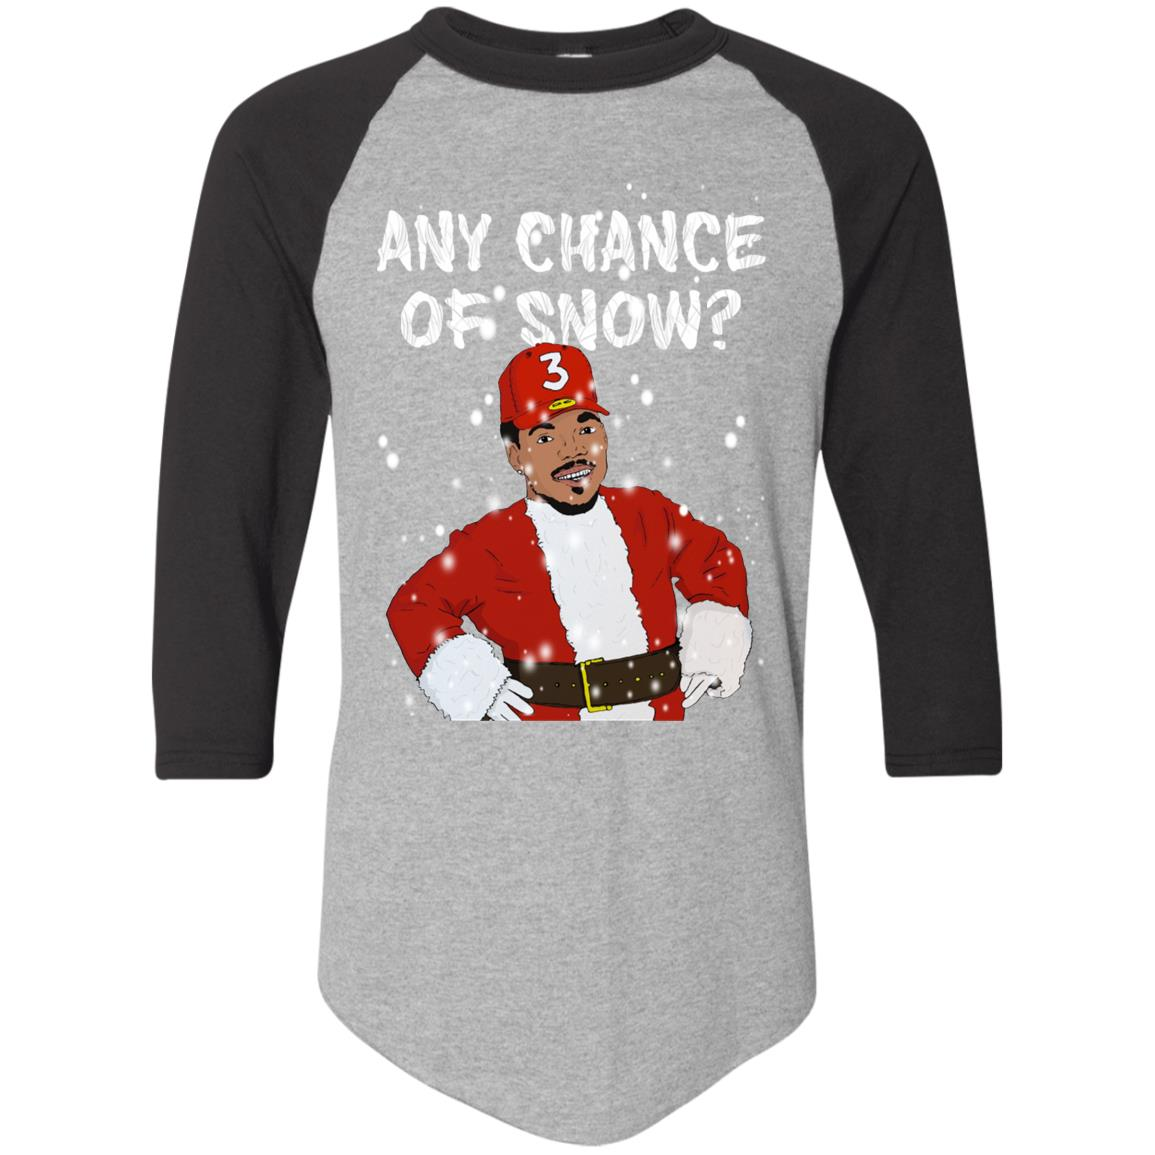 Any Chance of Snow The Rapper Christmas Sweater, Hoodie